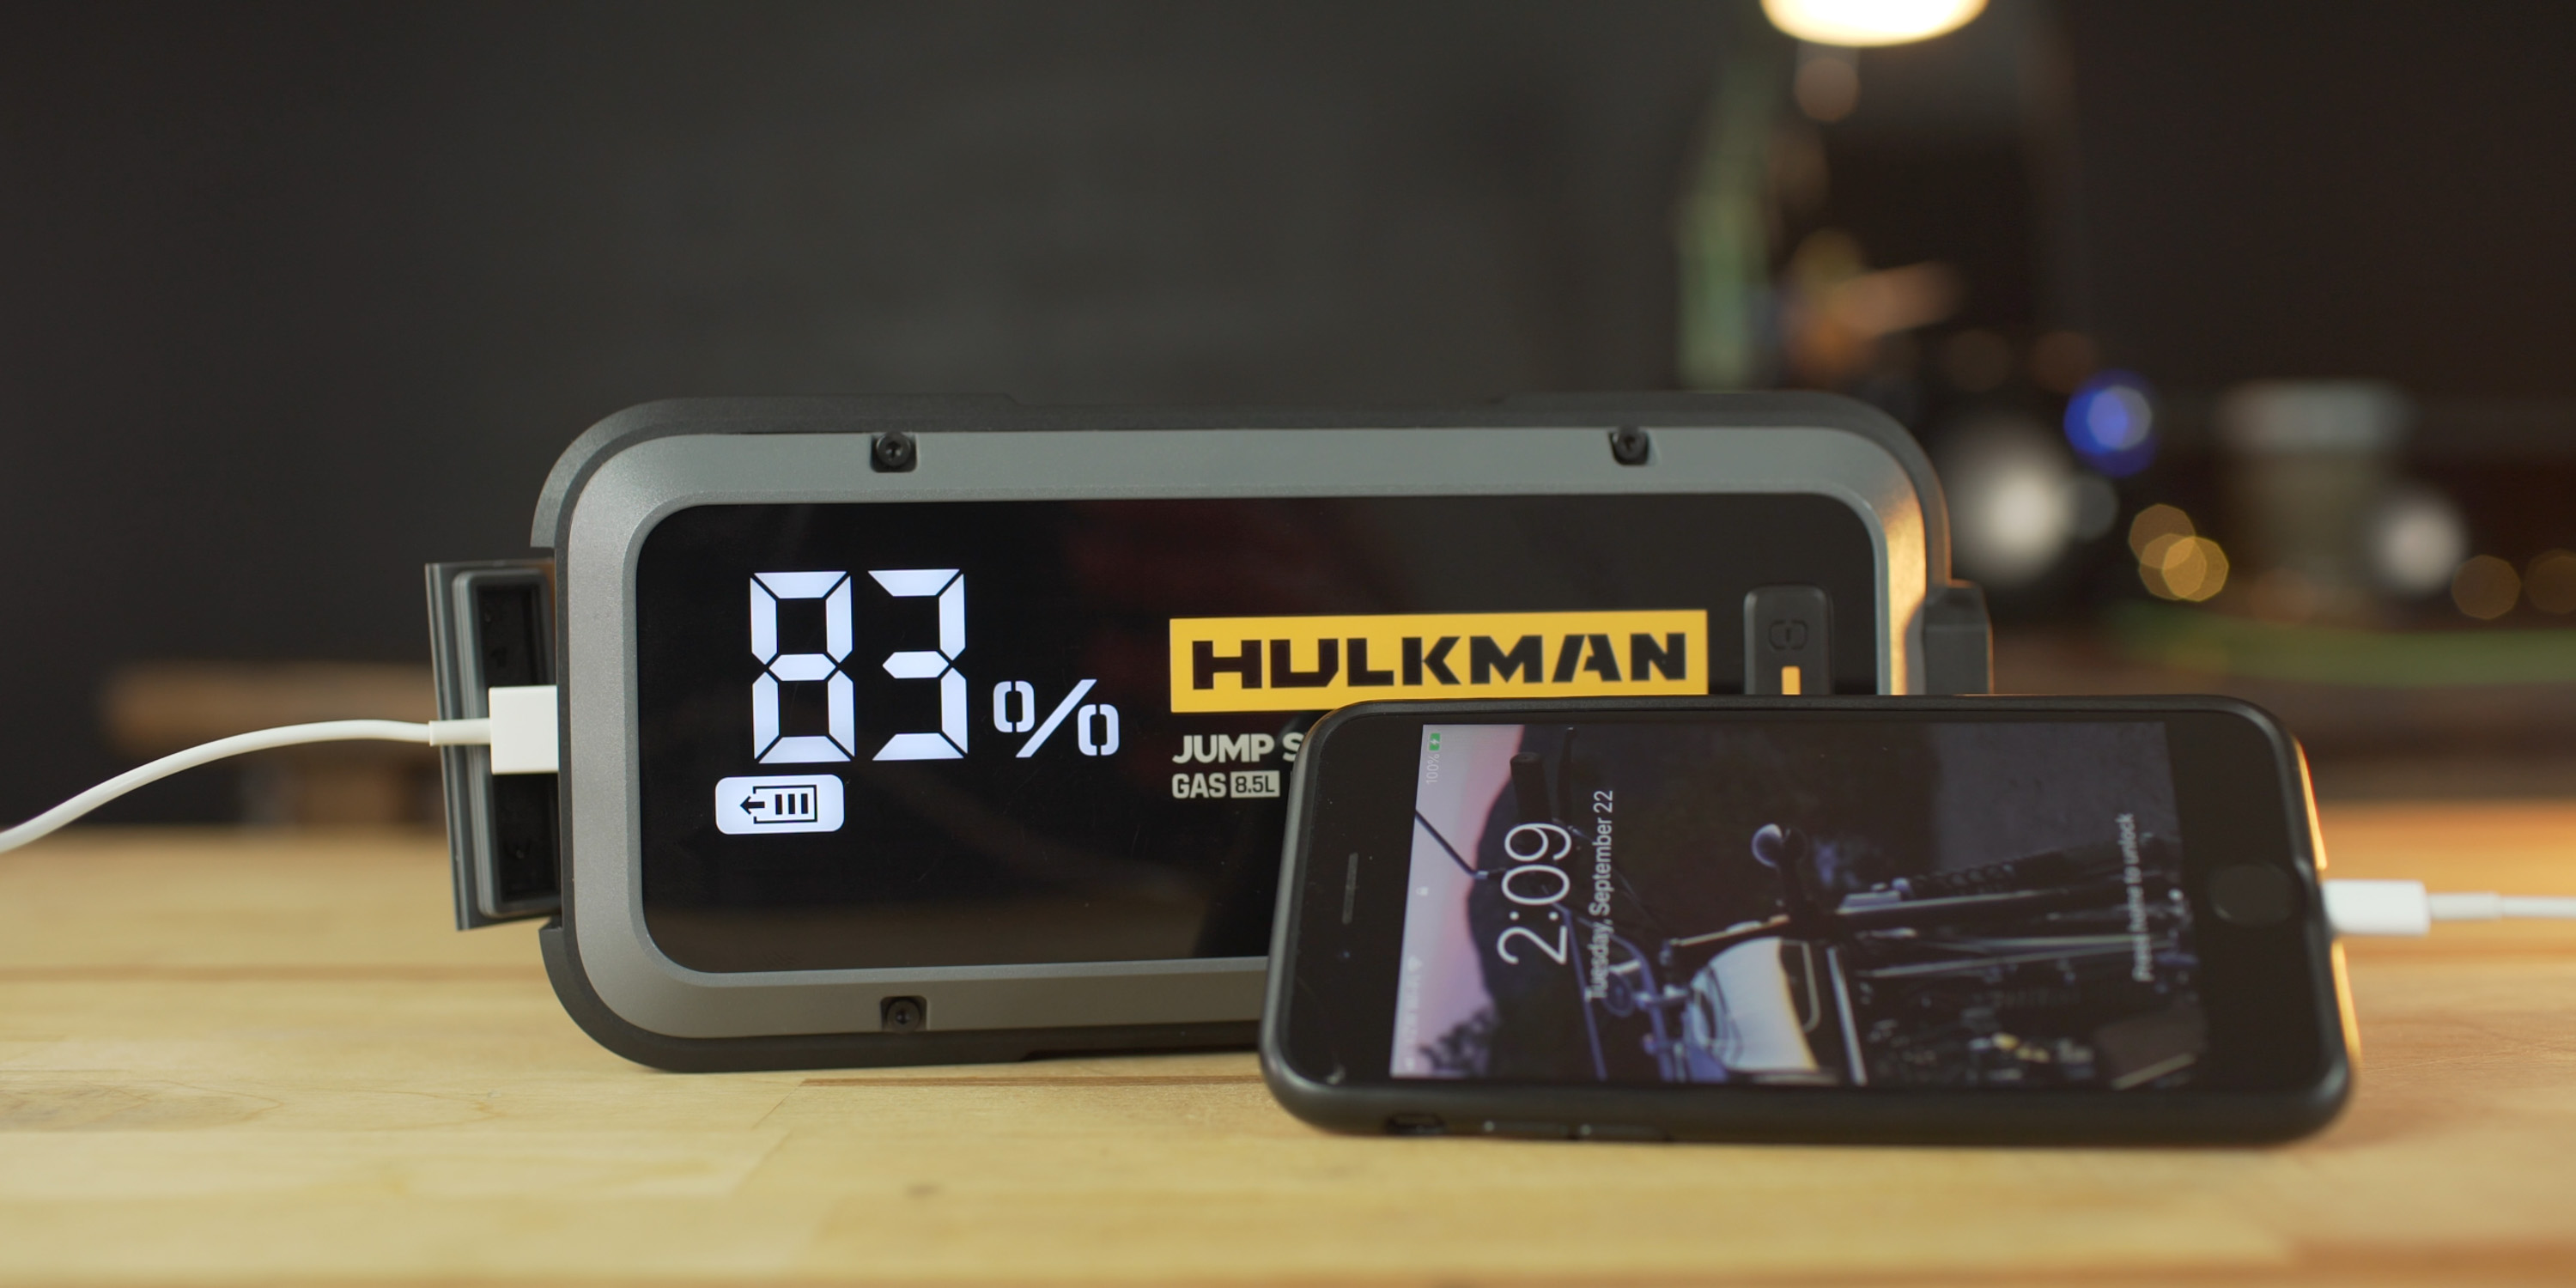 Charging an iPhone with the Hulkman Alpha 85S